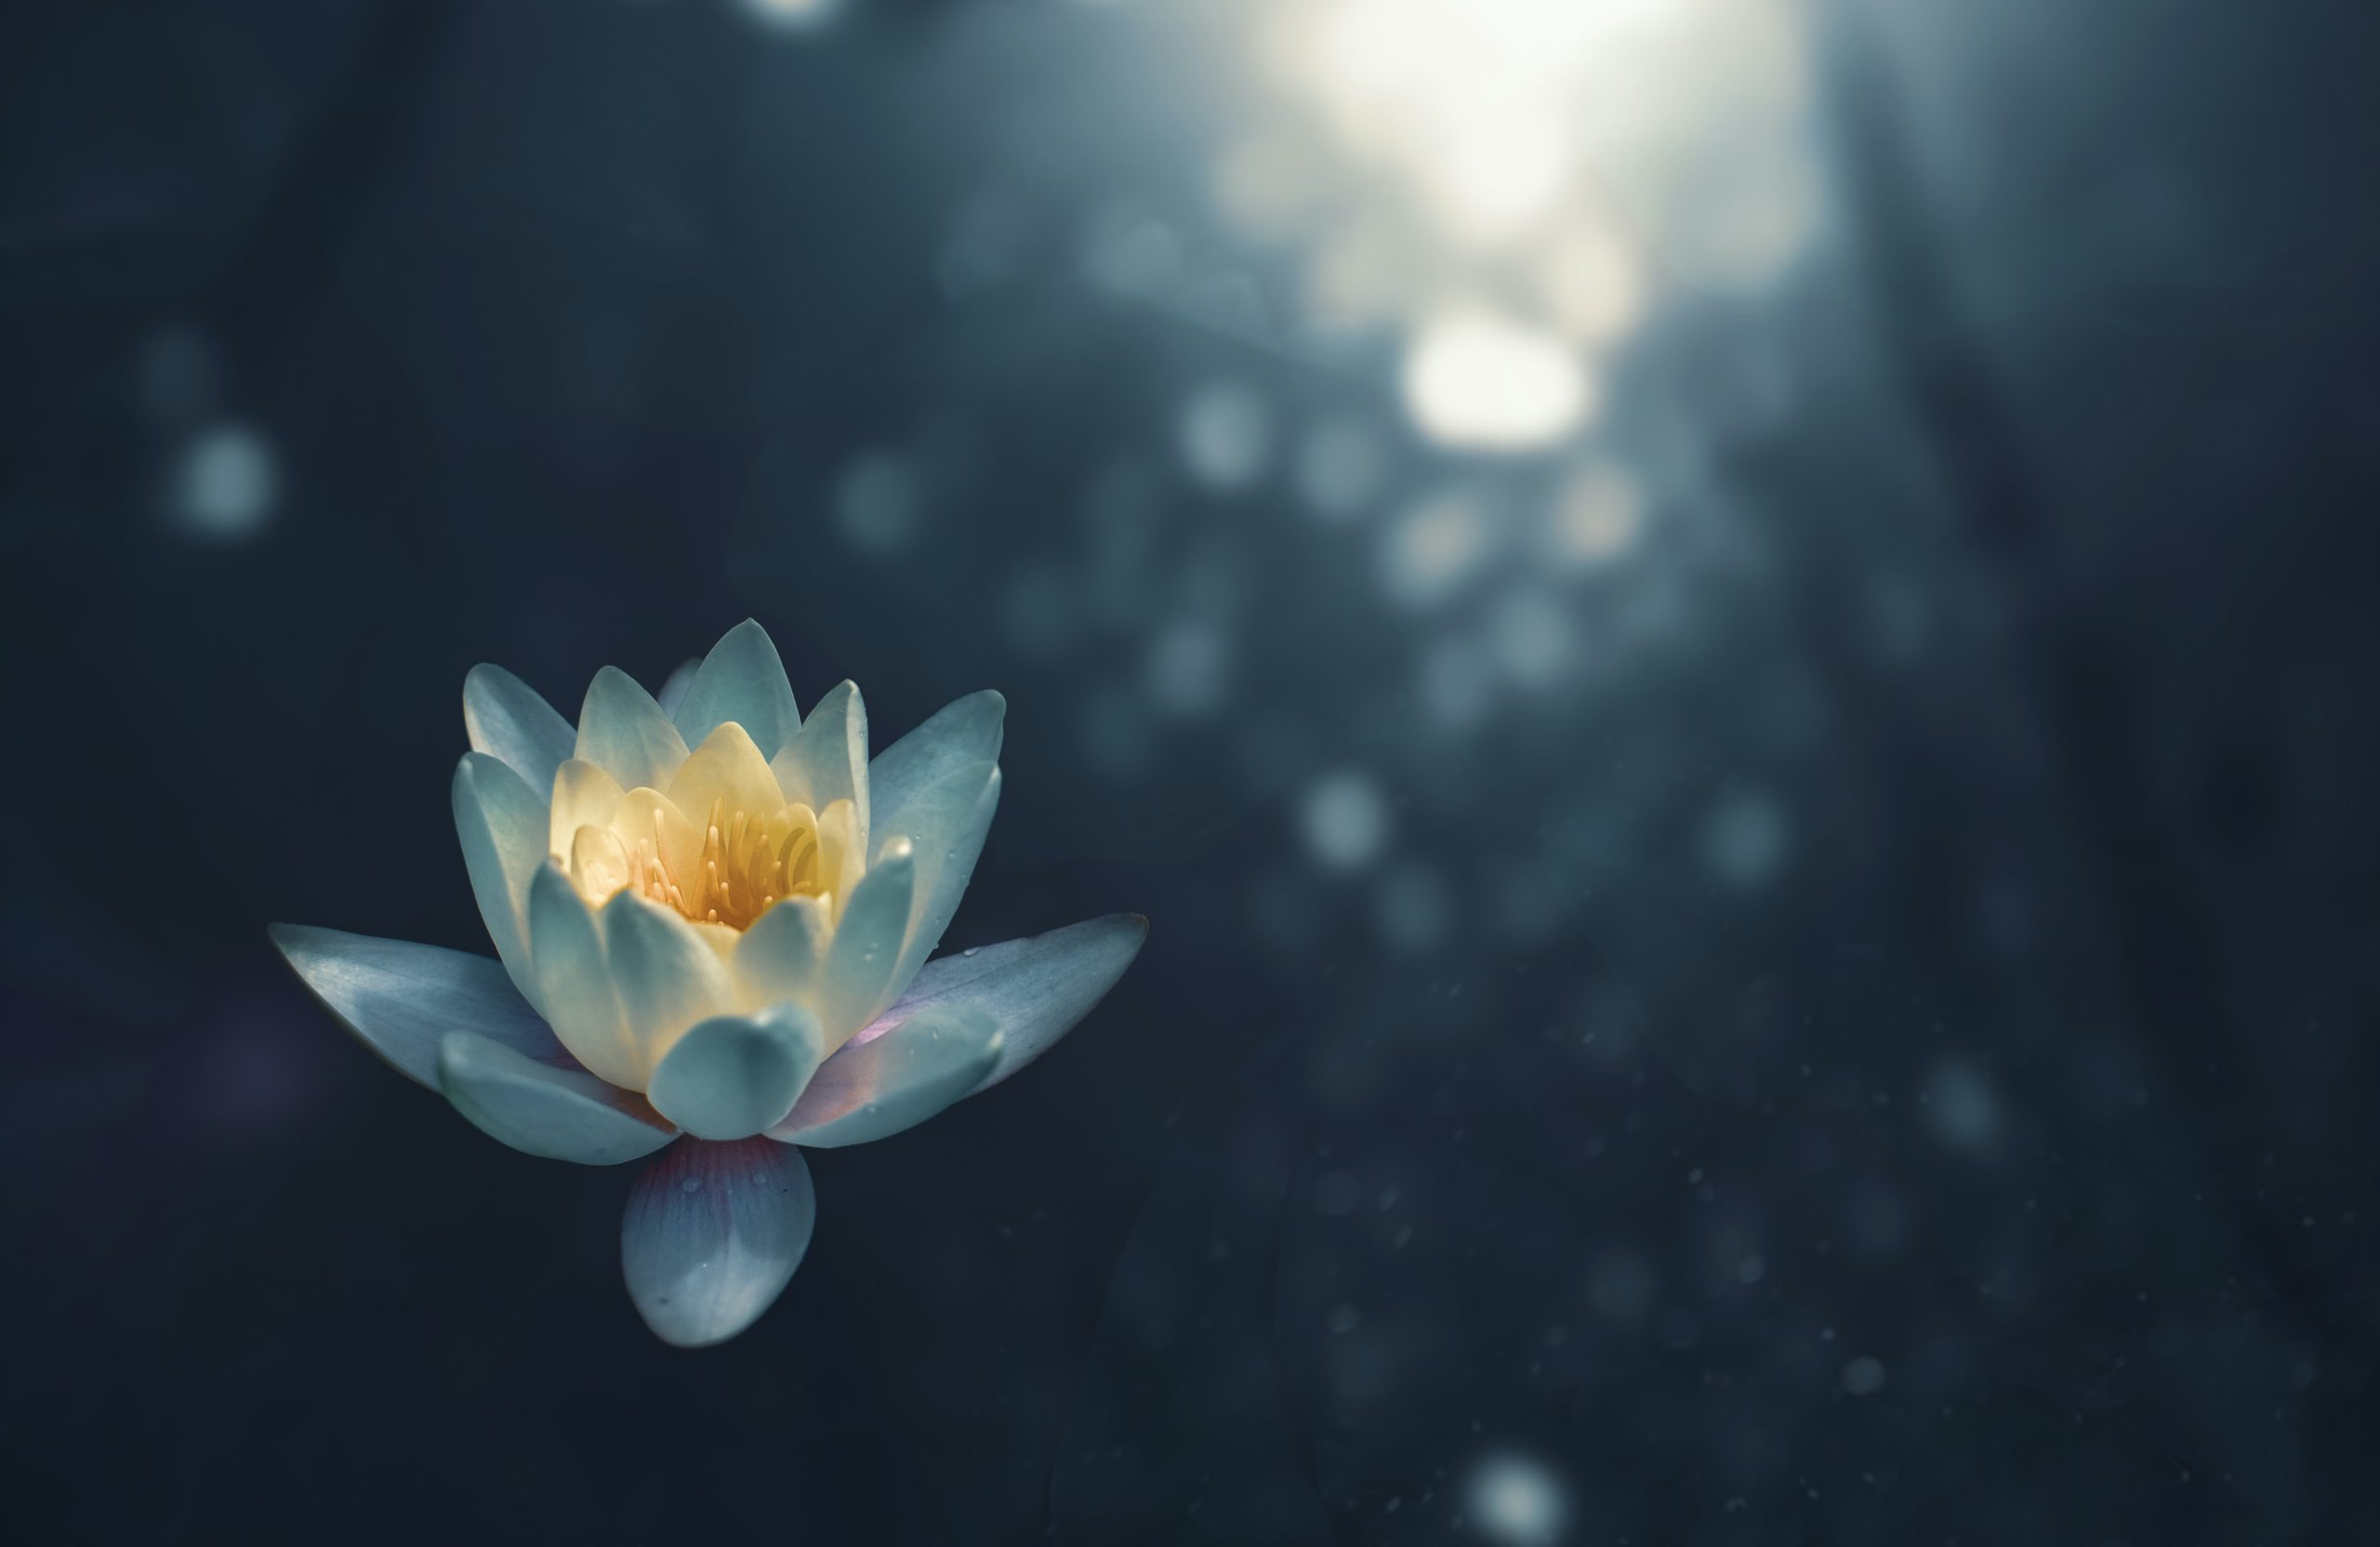 beautiful lotus flower floating on top of a lake with light shining on the surface